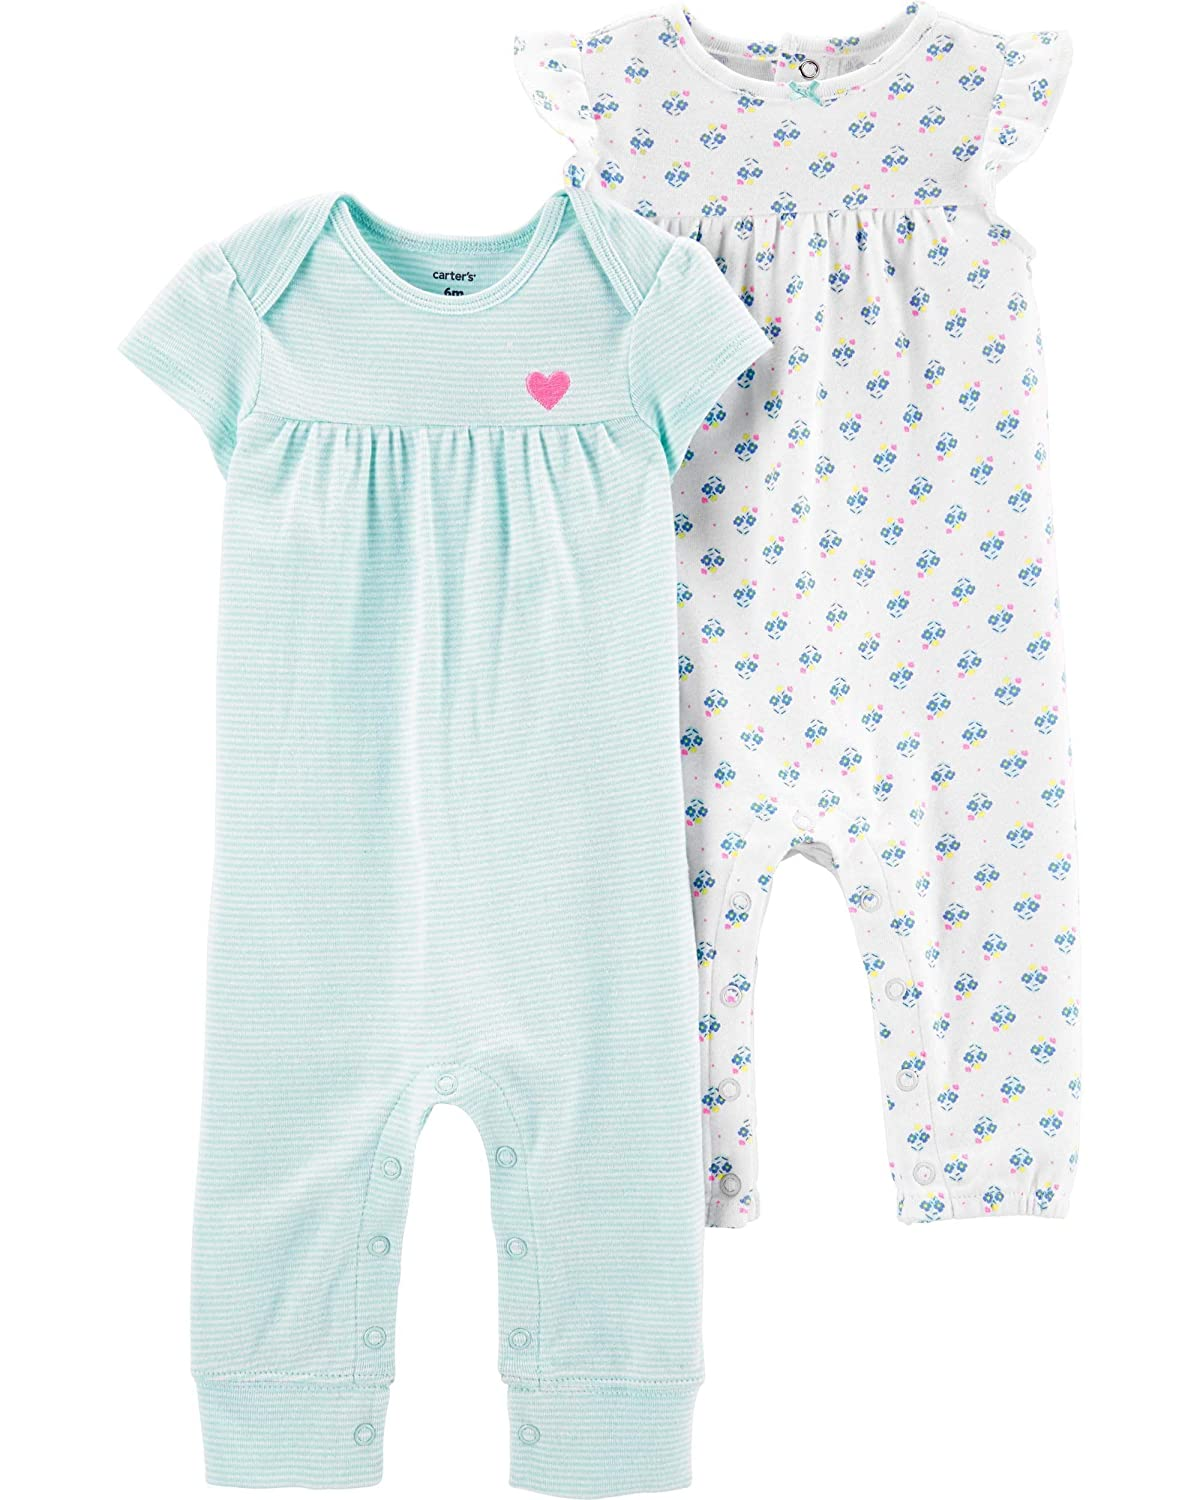 Carters Baby Girls 2-Pack Jumpsuits Blue Stripes /& Floral